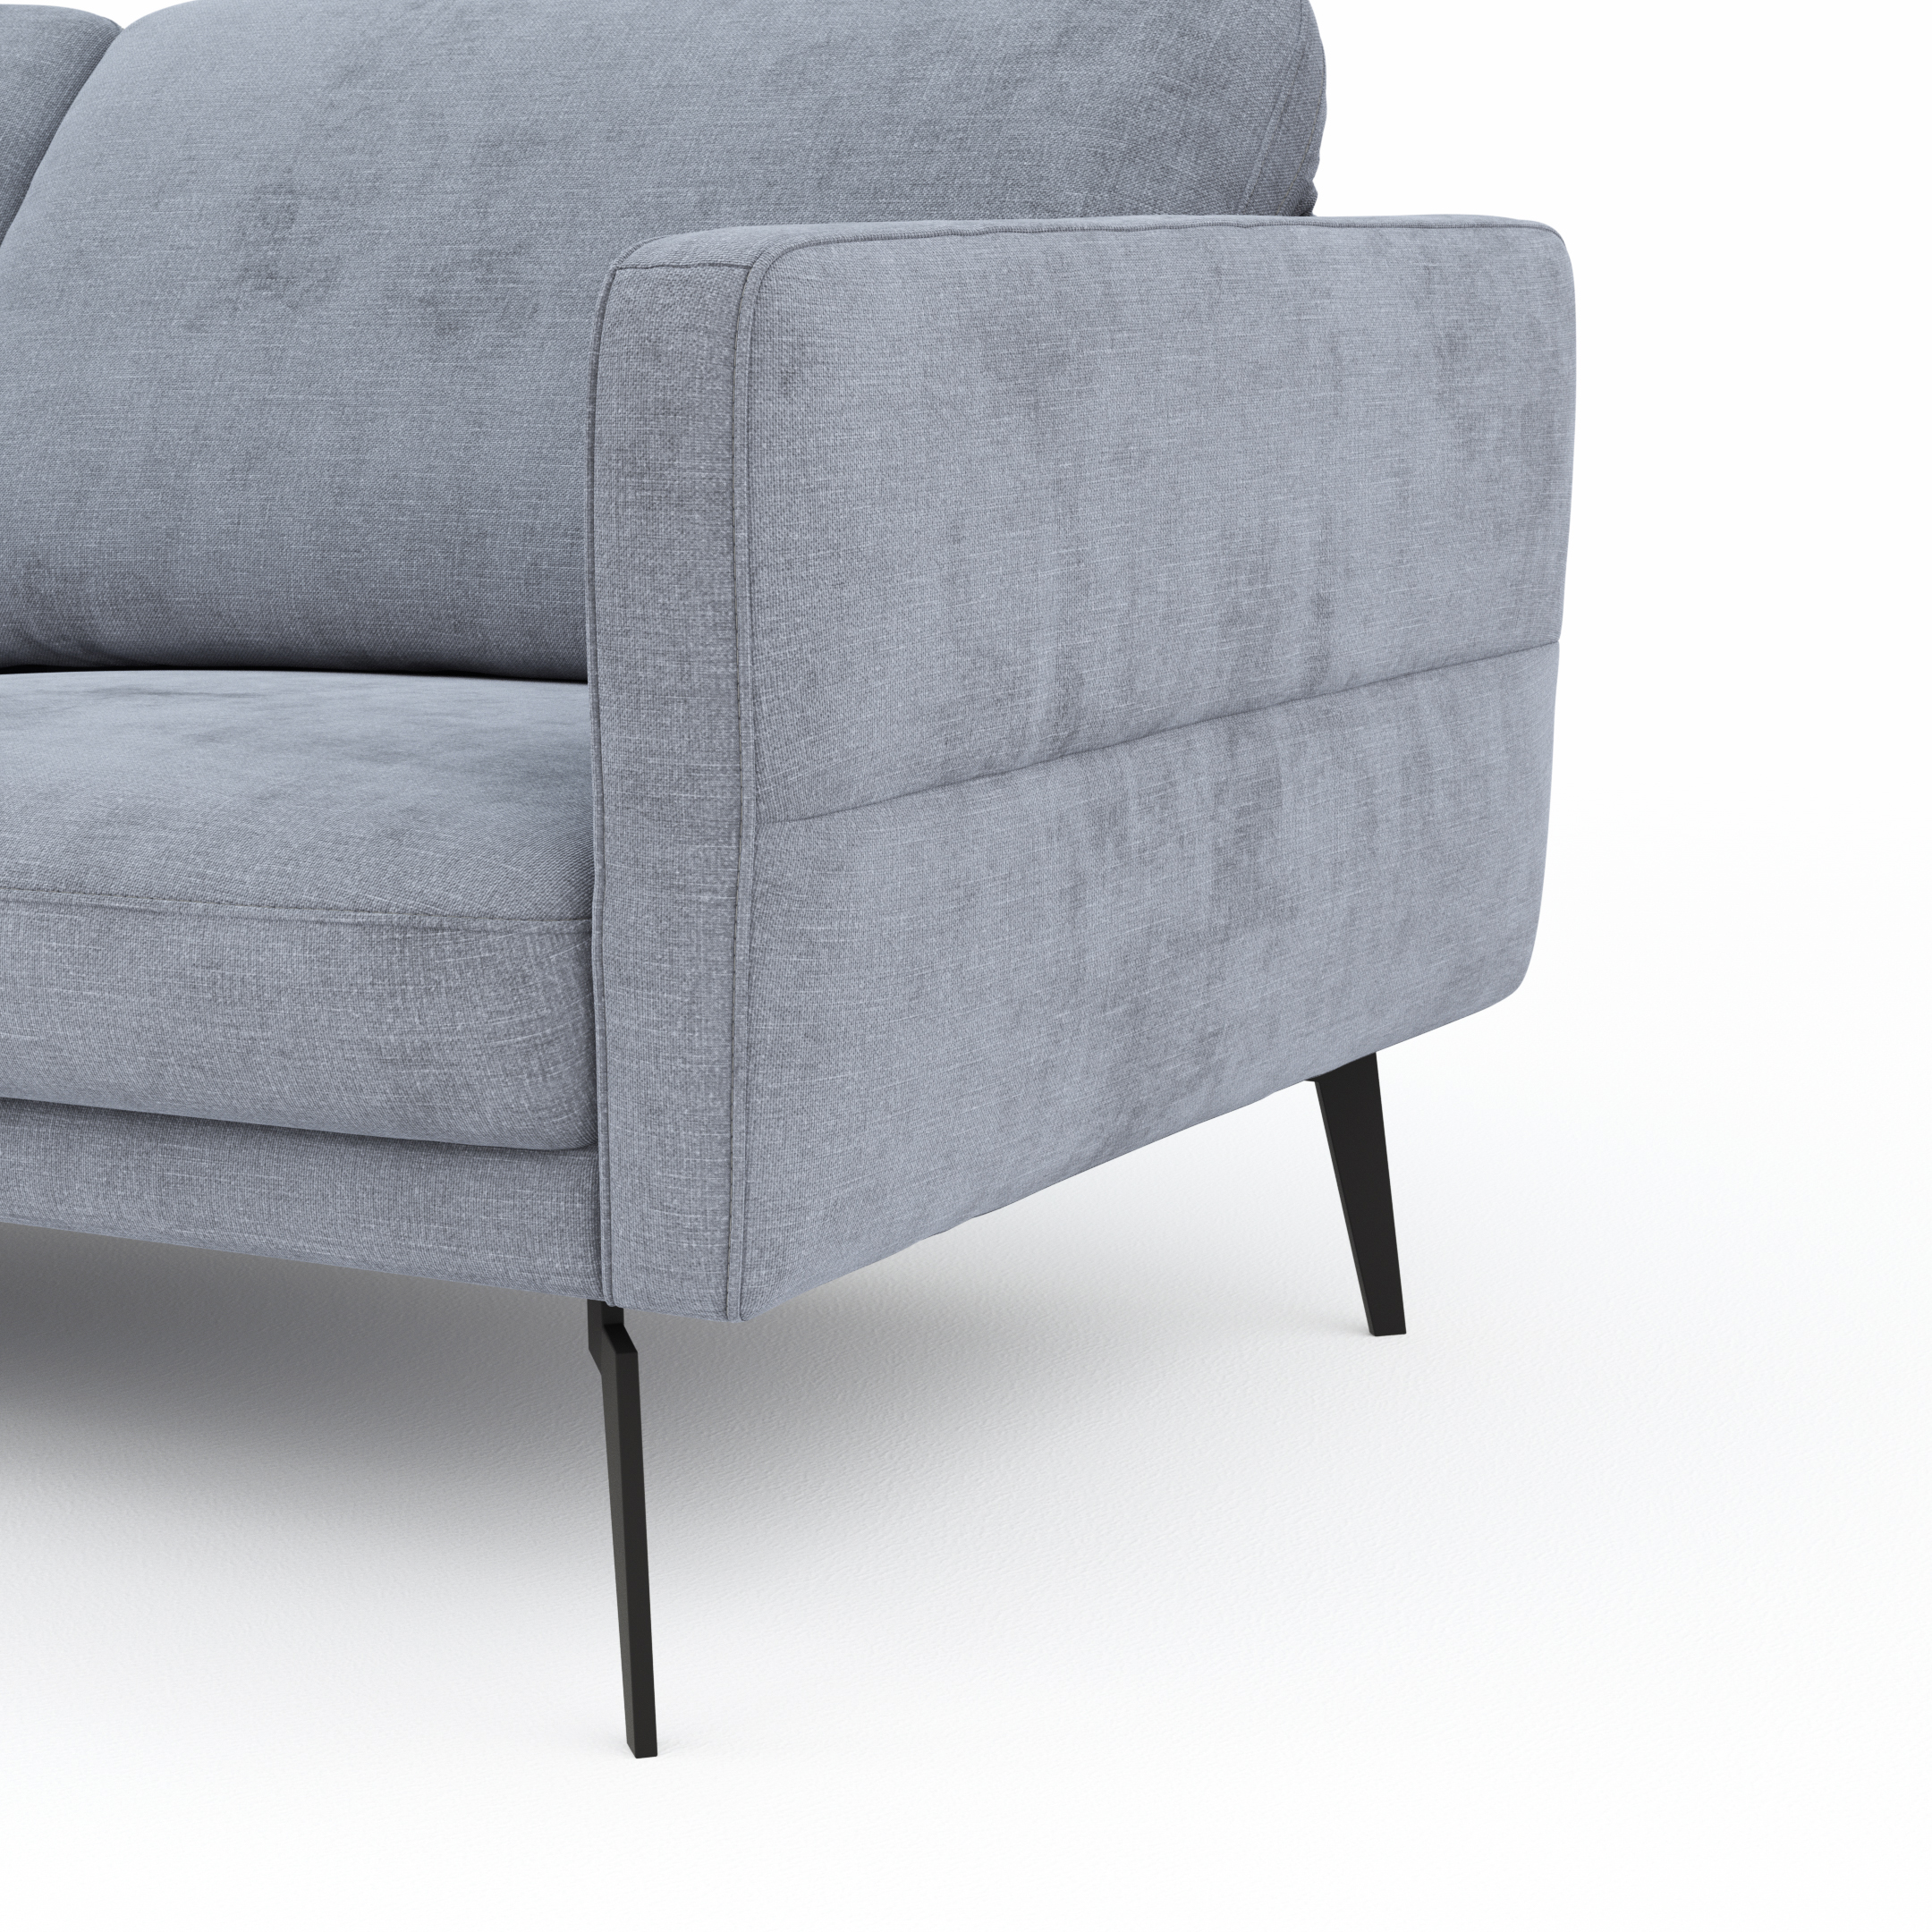 Global Select Sofa Estrela detailbild 1 104247 | Homepoet